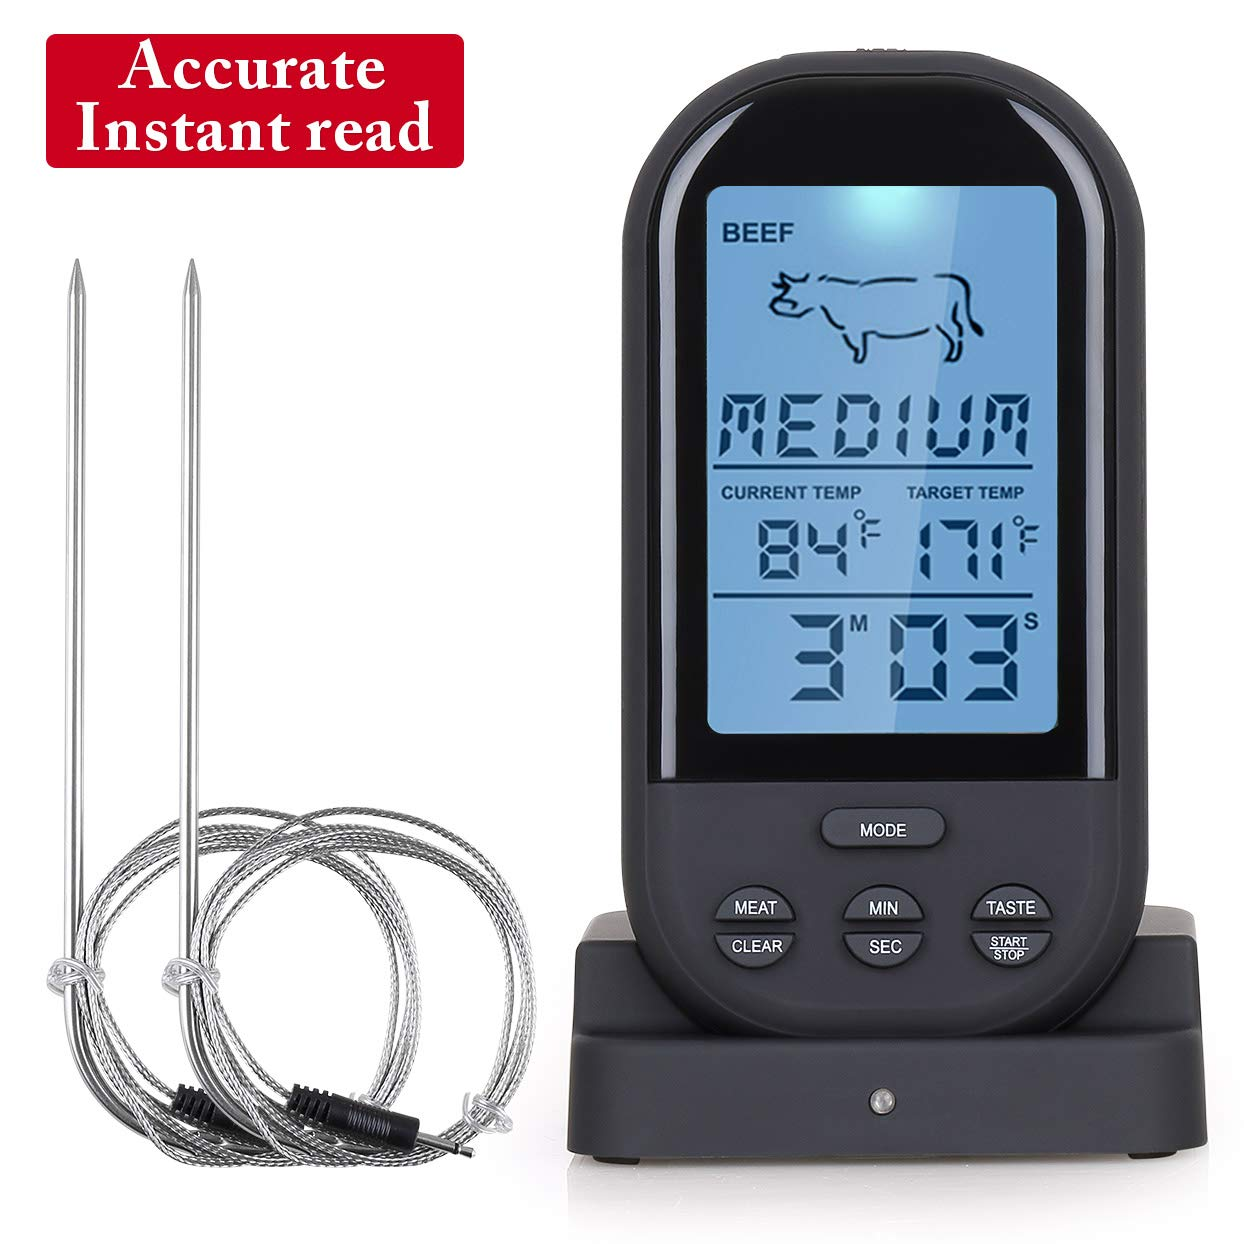 Pansonite Wireless Meat Thermometer with Dual Probes and Digital LCD, Instant Read for Turkey Oven Grill Smoker Kitchen Cooking BBQ, 300 Feet Range Remote Control (2)